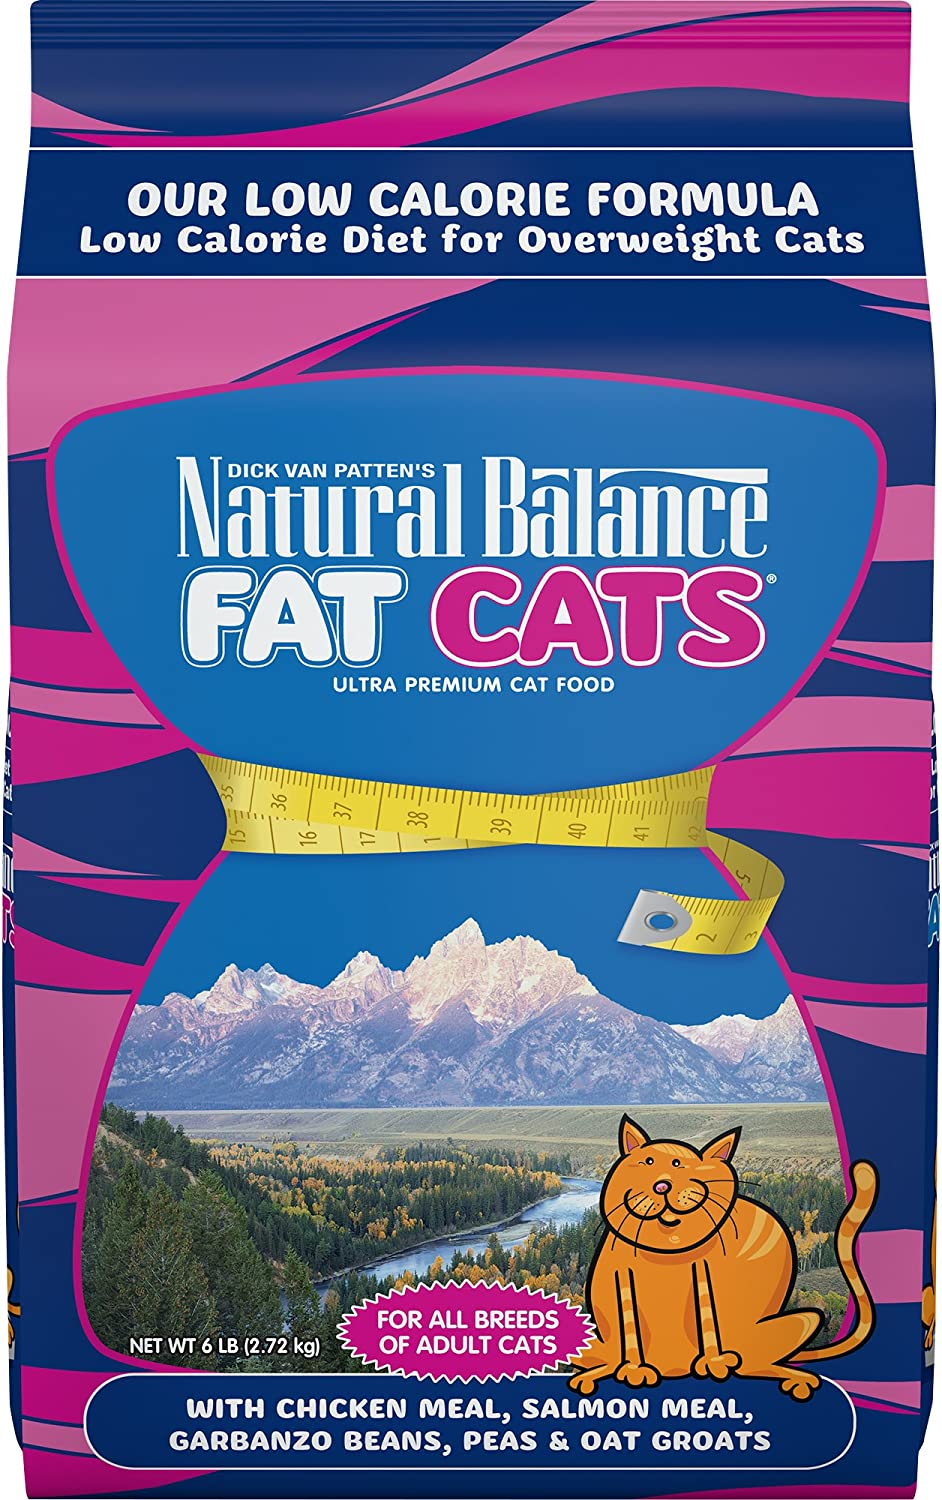 Natural Balance Fat Cats Low Calorie Dry Cat Food, 6Pound